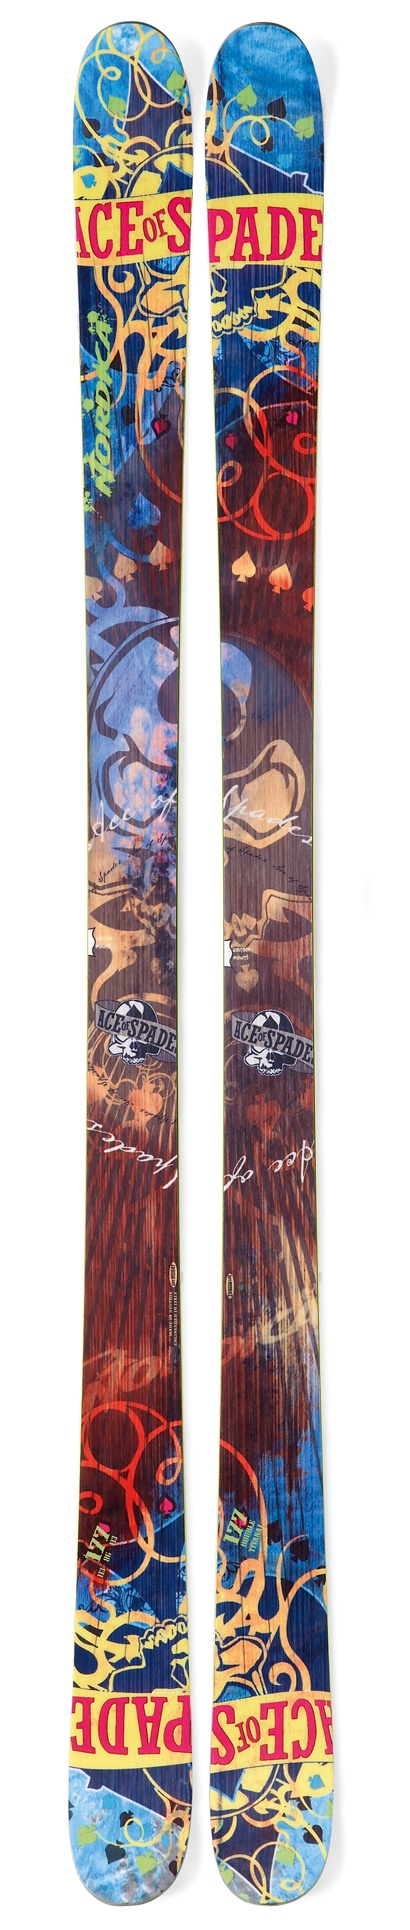 Nordica ace of spades park and pipe skis